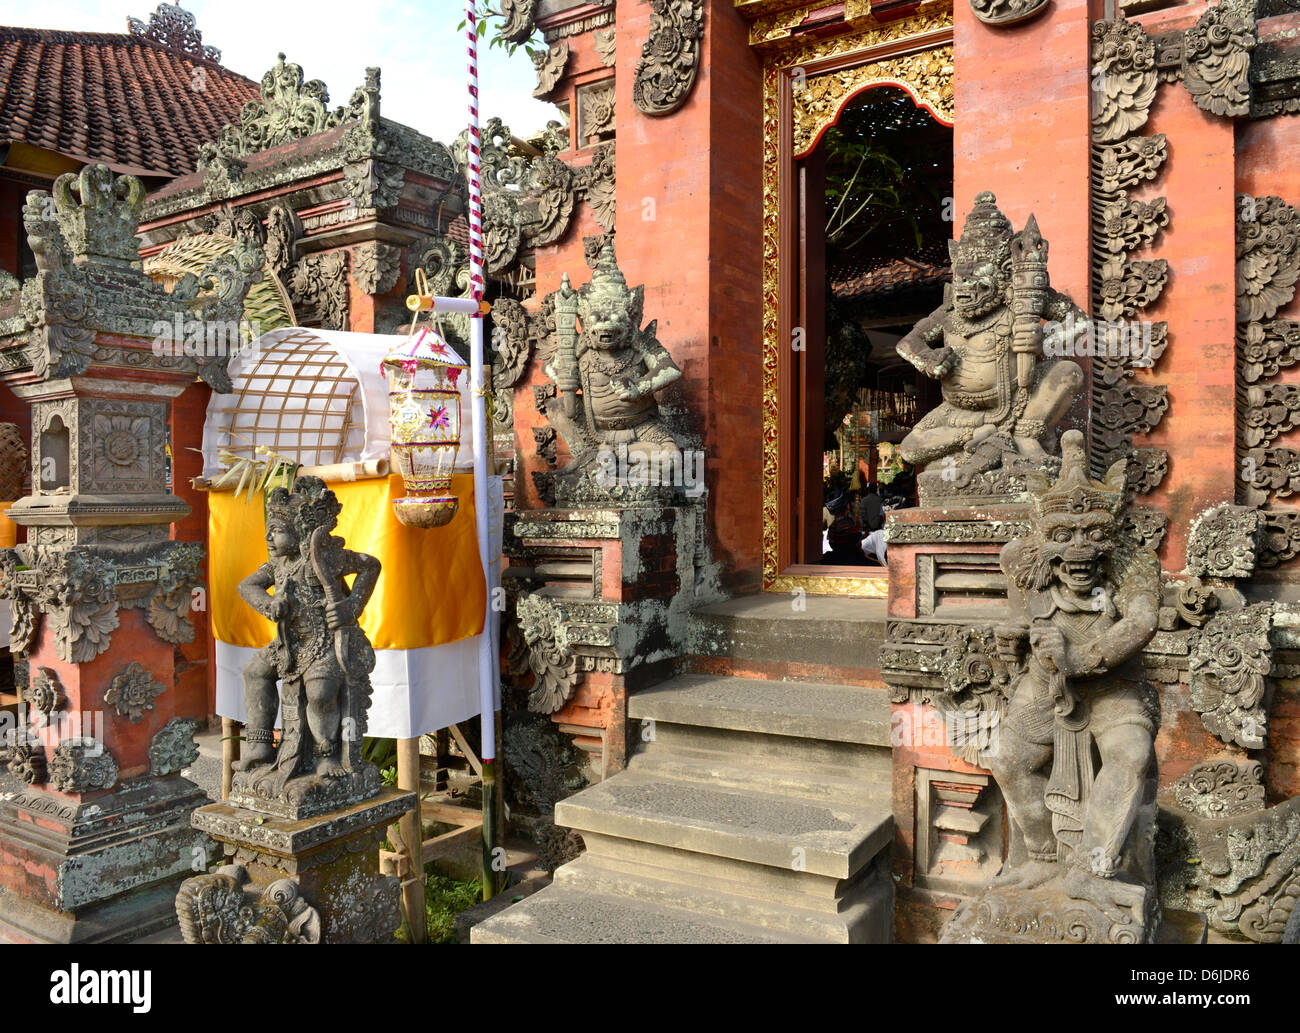 Gate of a wealthy Balinese household, Ubud, Bali, Indonesia, Southeast Asia, Asia - Stock Image